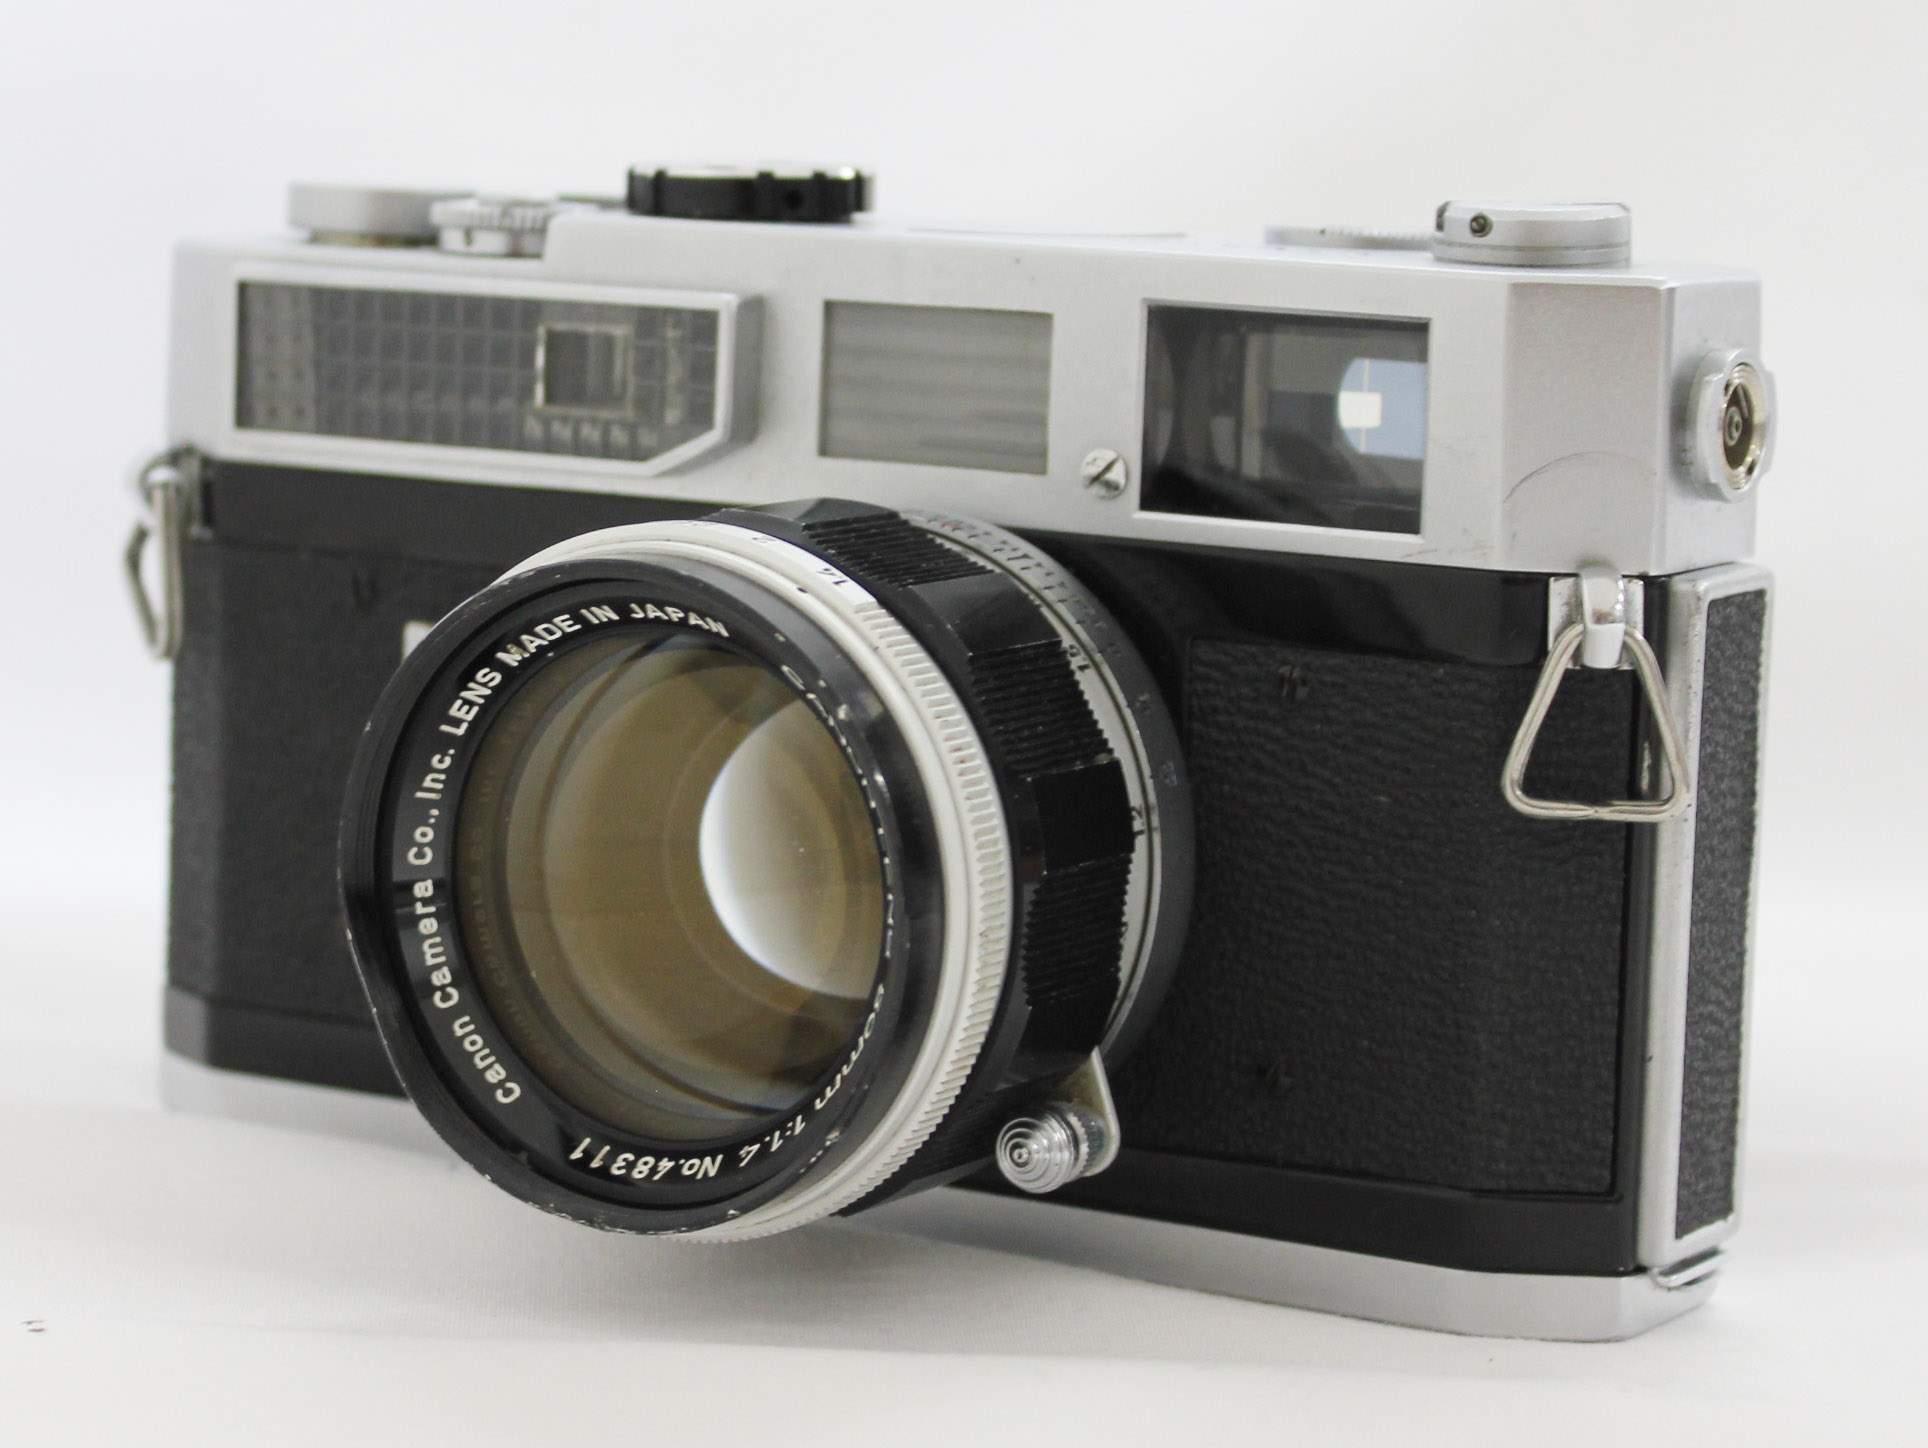 Japan Used Camera Shop | Canon Model 7 Rangefinder Camera with 50mm F/1.4 Leica L39 Mount Lens from Japan